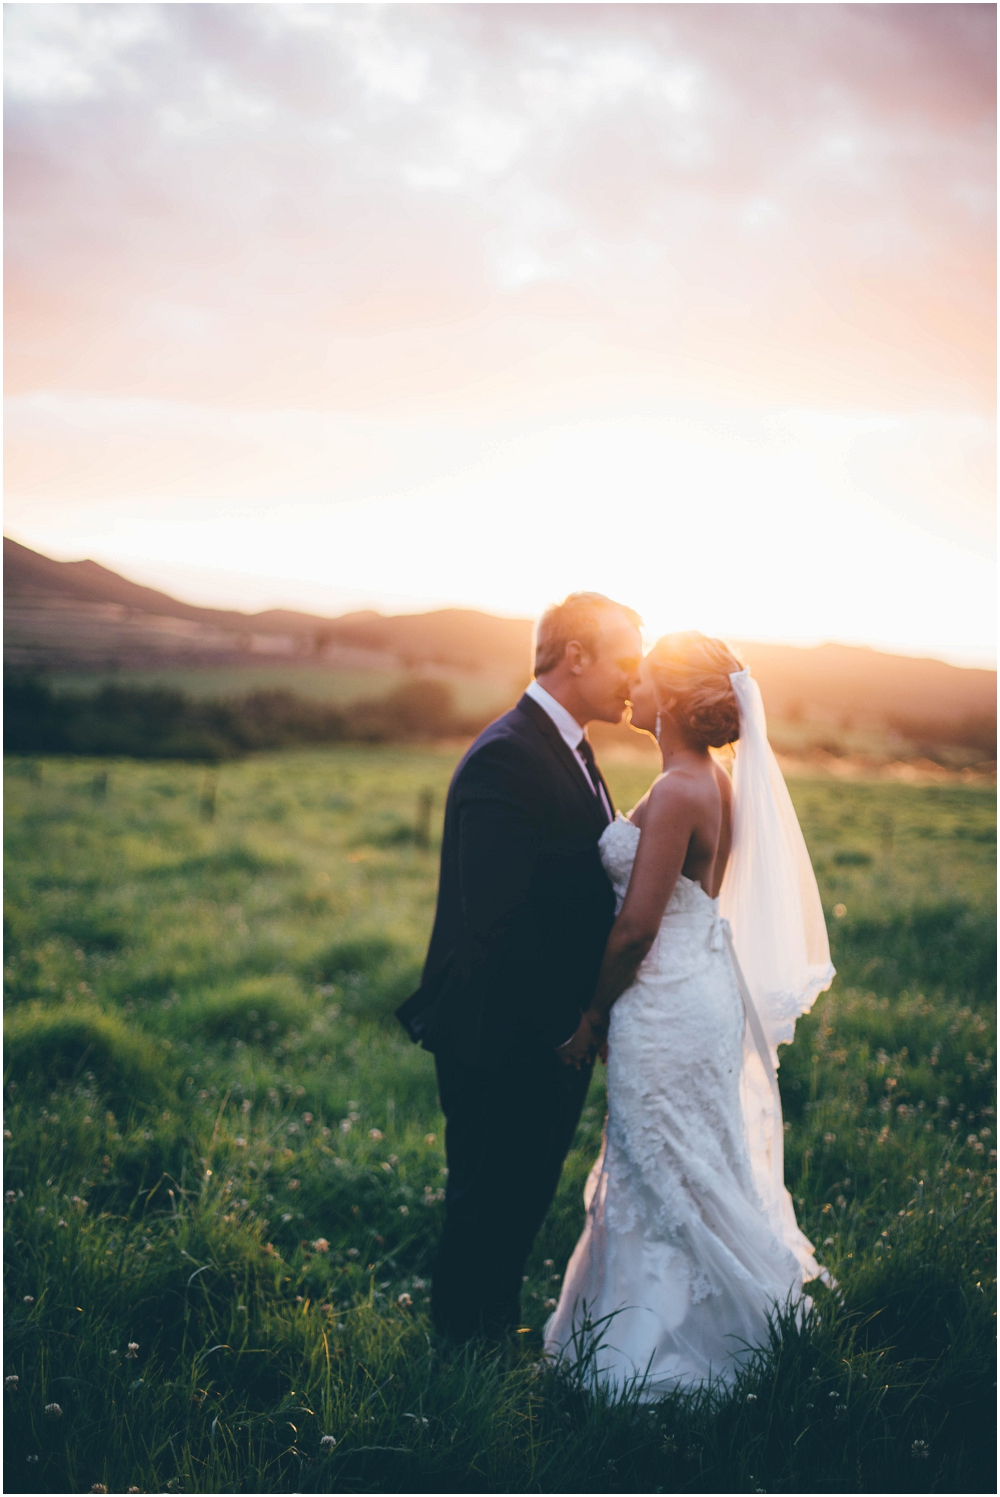 Ronel Kruger Cape Town Wedding and Lifestyle Photographer_0546.jpg